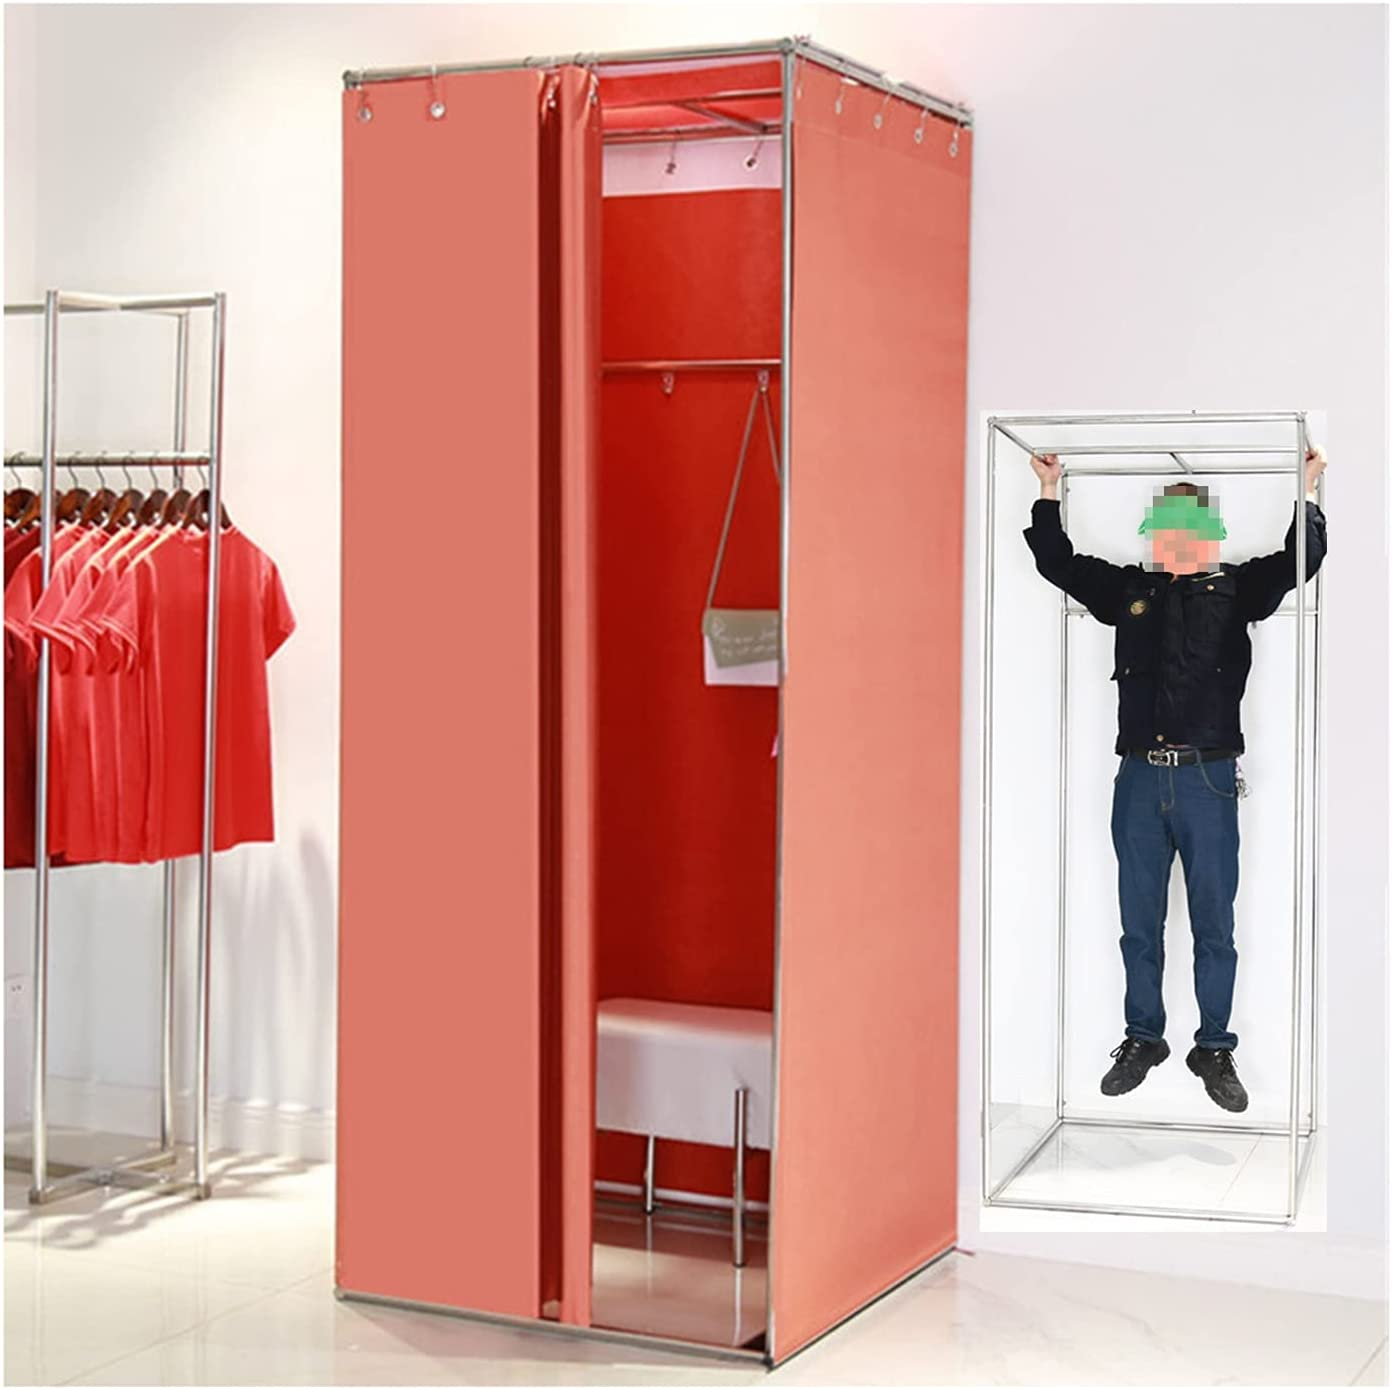 Max 71% OFF Assemble The Camp Bombing free shipping Toilet Changing Privacy Blackout C Screen Room